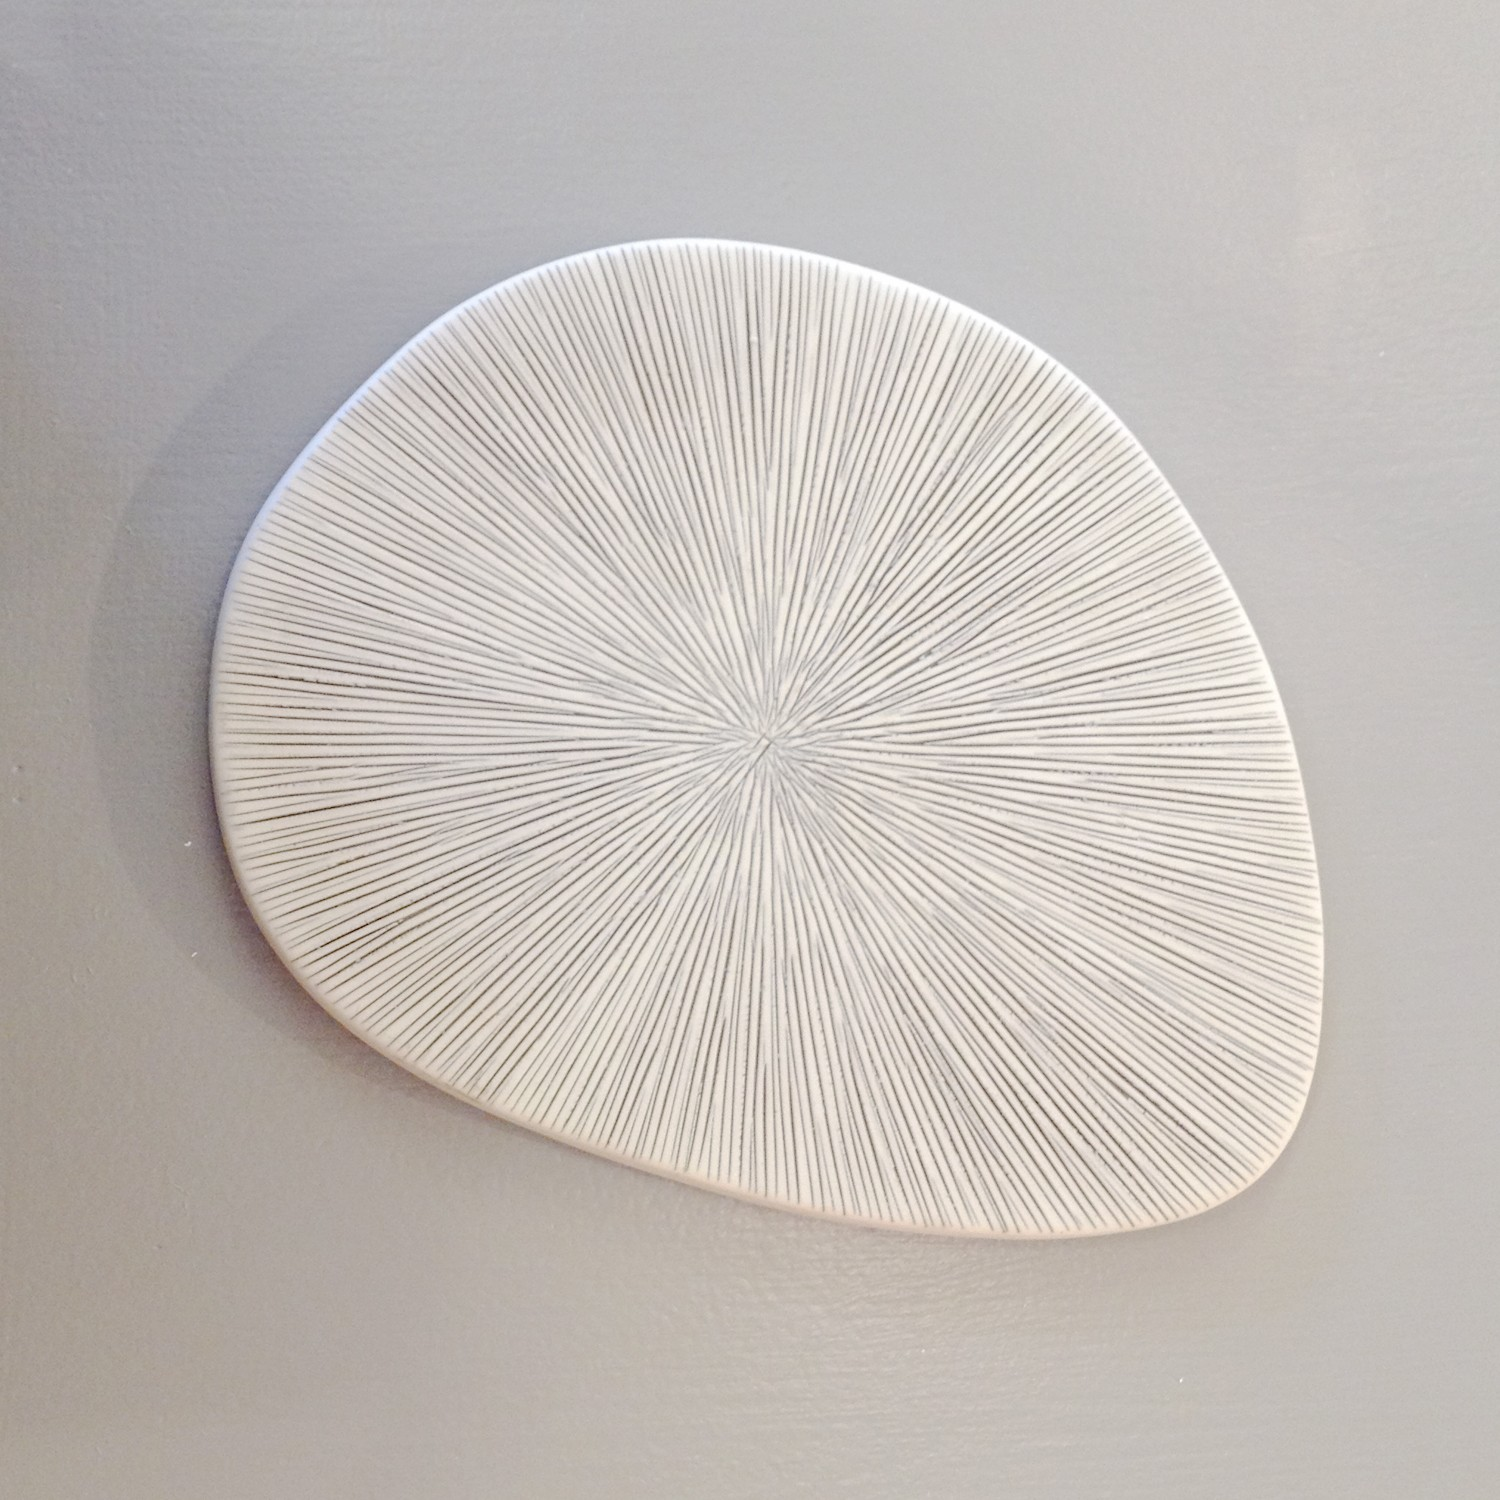 Best Decorative Ceramic Plate Grey And White Lines The Blue This Month